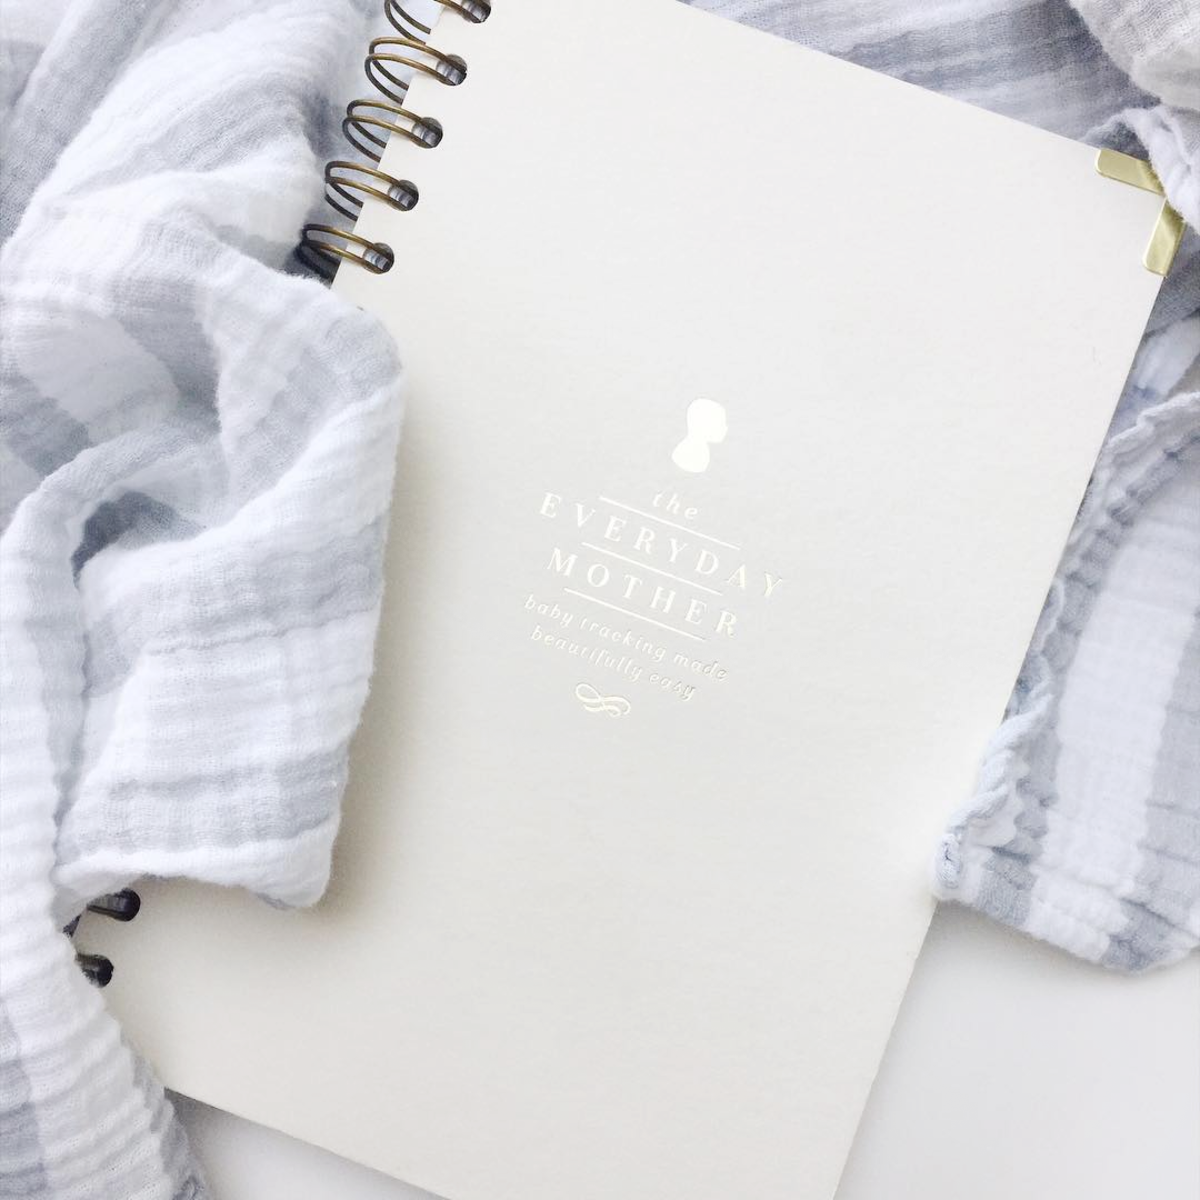 The Everyday Mother: a beautiful notebook for keeping track of newborn feedings, diaper changes, and sleep patterns